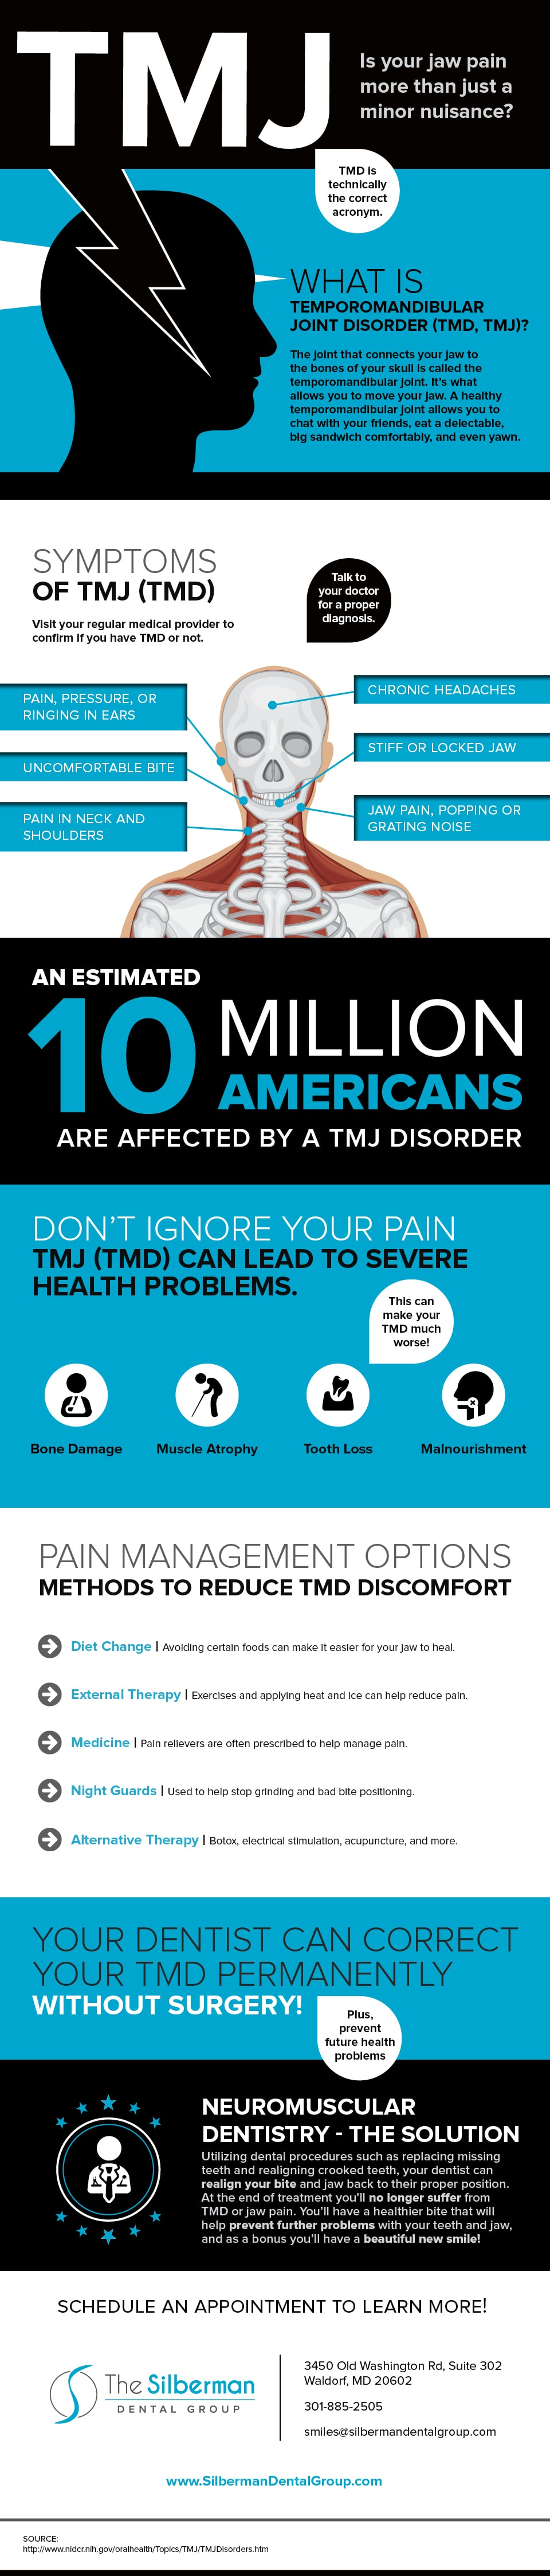 Do you have jaw pain? It could be TMJ disorder. Check out this infographic about TMJ and how Dr. Silberman, your Waldorf dentist, can help.